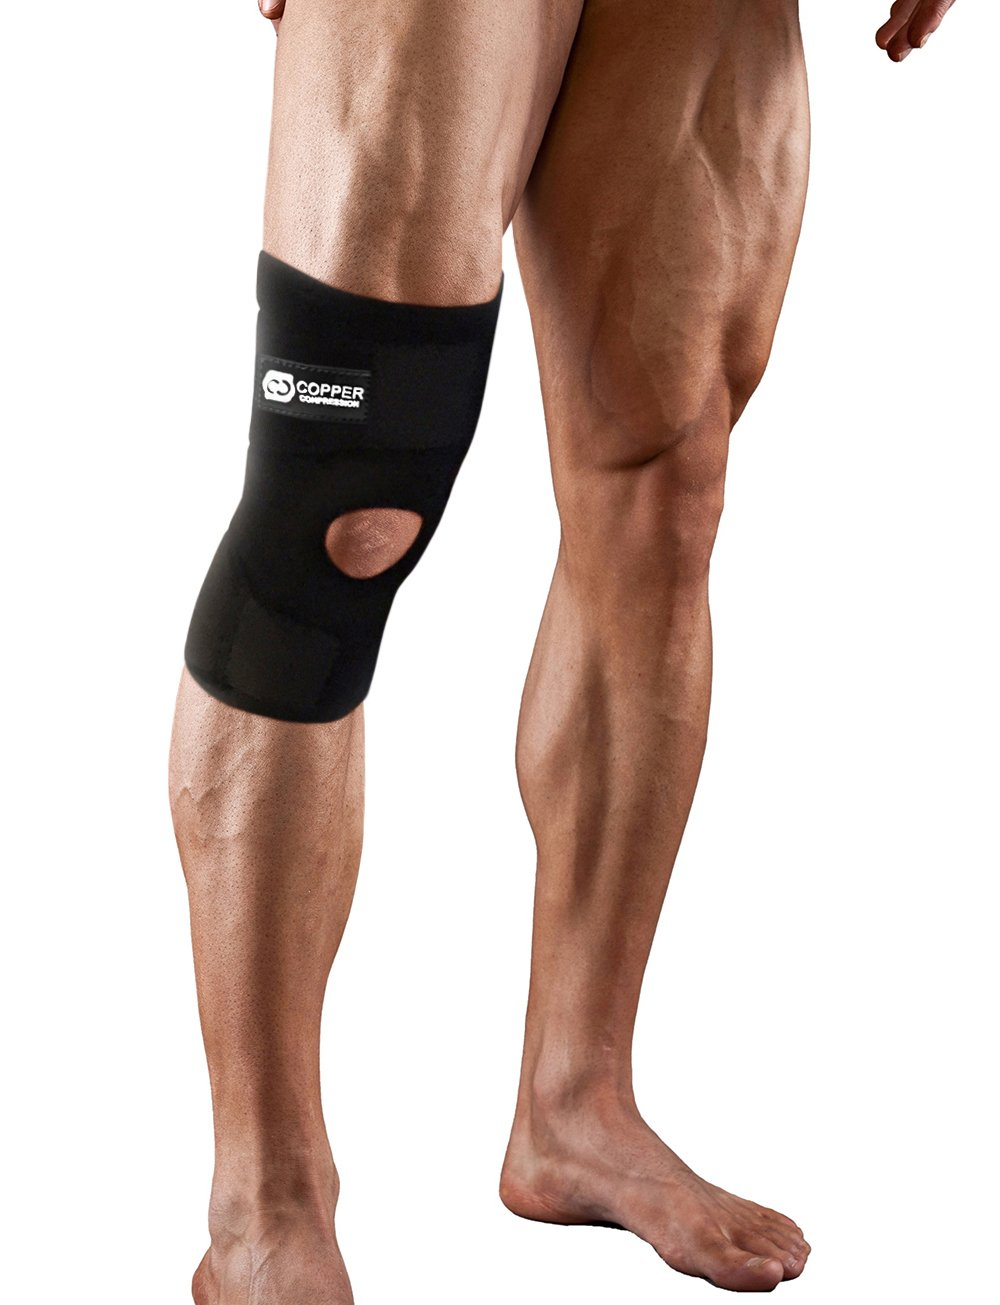 Copper Compression Extra Support Knee Brace. Highest Copper Content Guaranteed. Best Adjustable Copper Infused Fit Knee Brace. Open Patella Stabilizer Neoprene Sleeve for Sprains and Injury Recovery by Copper Compression